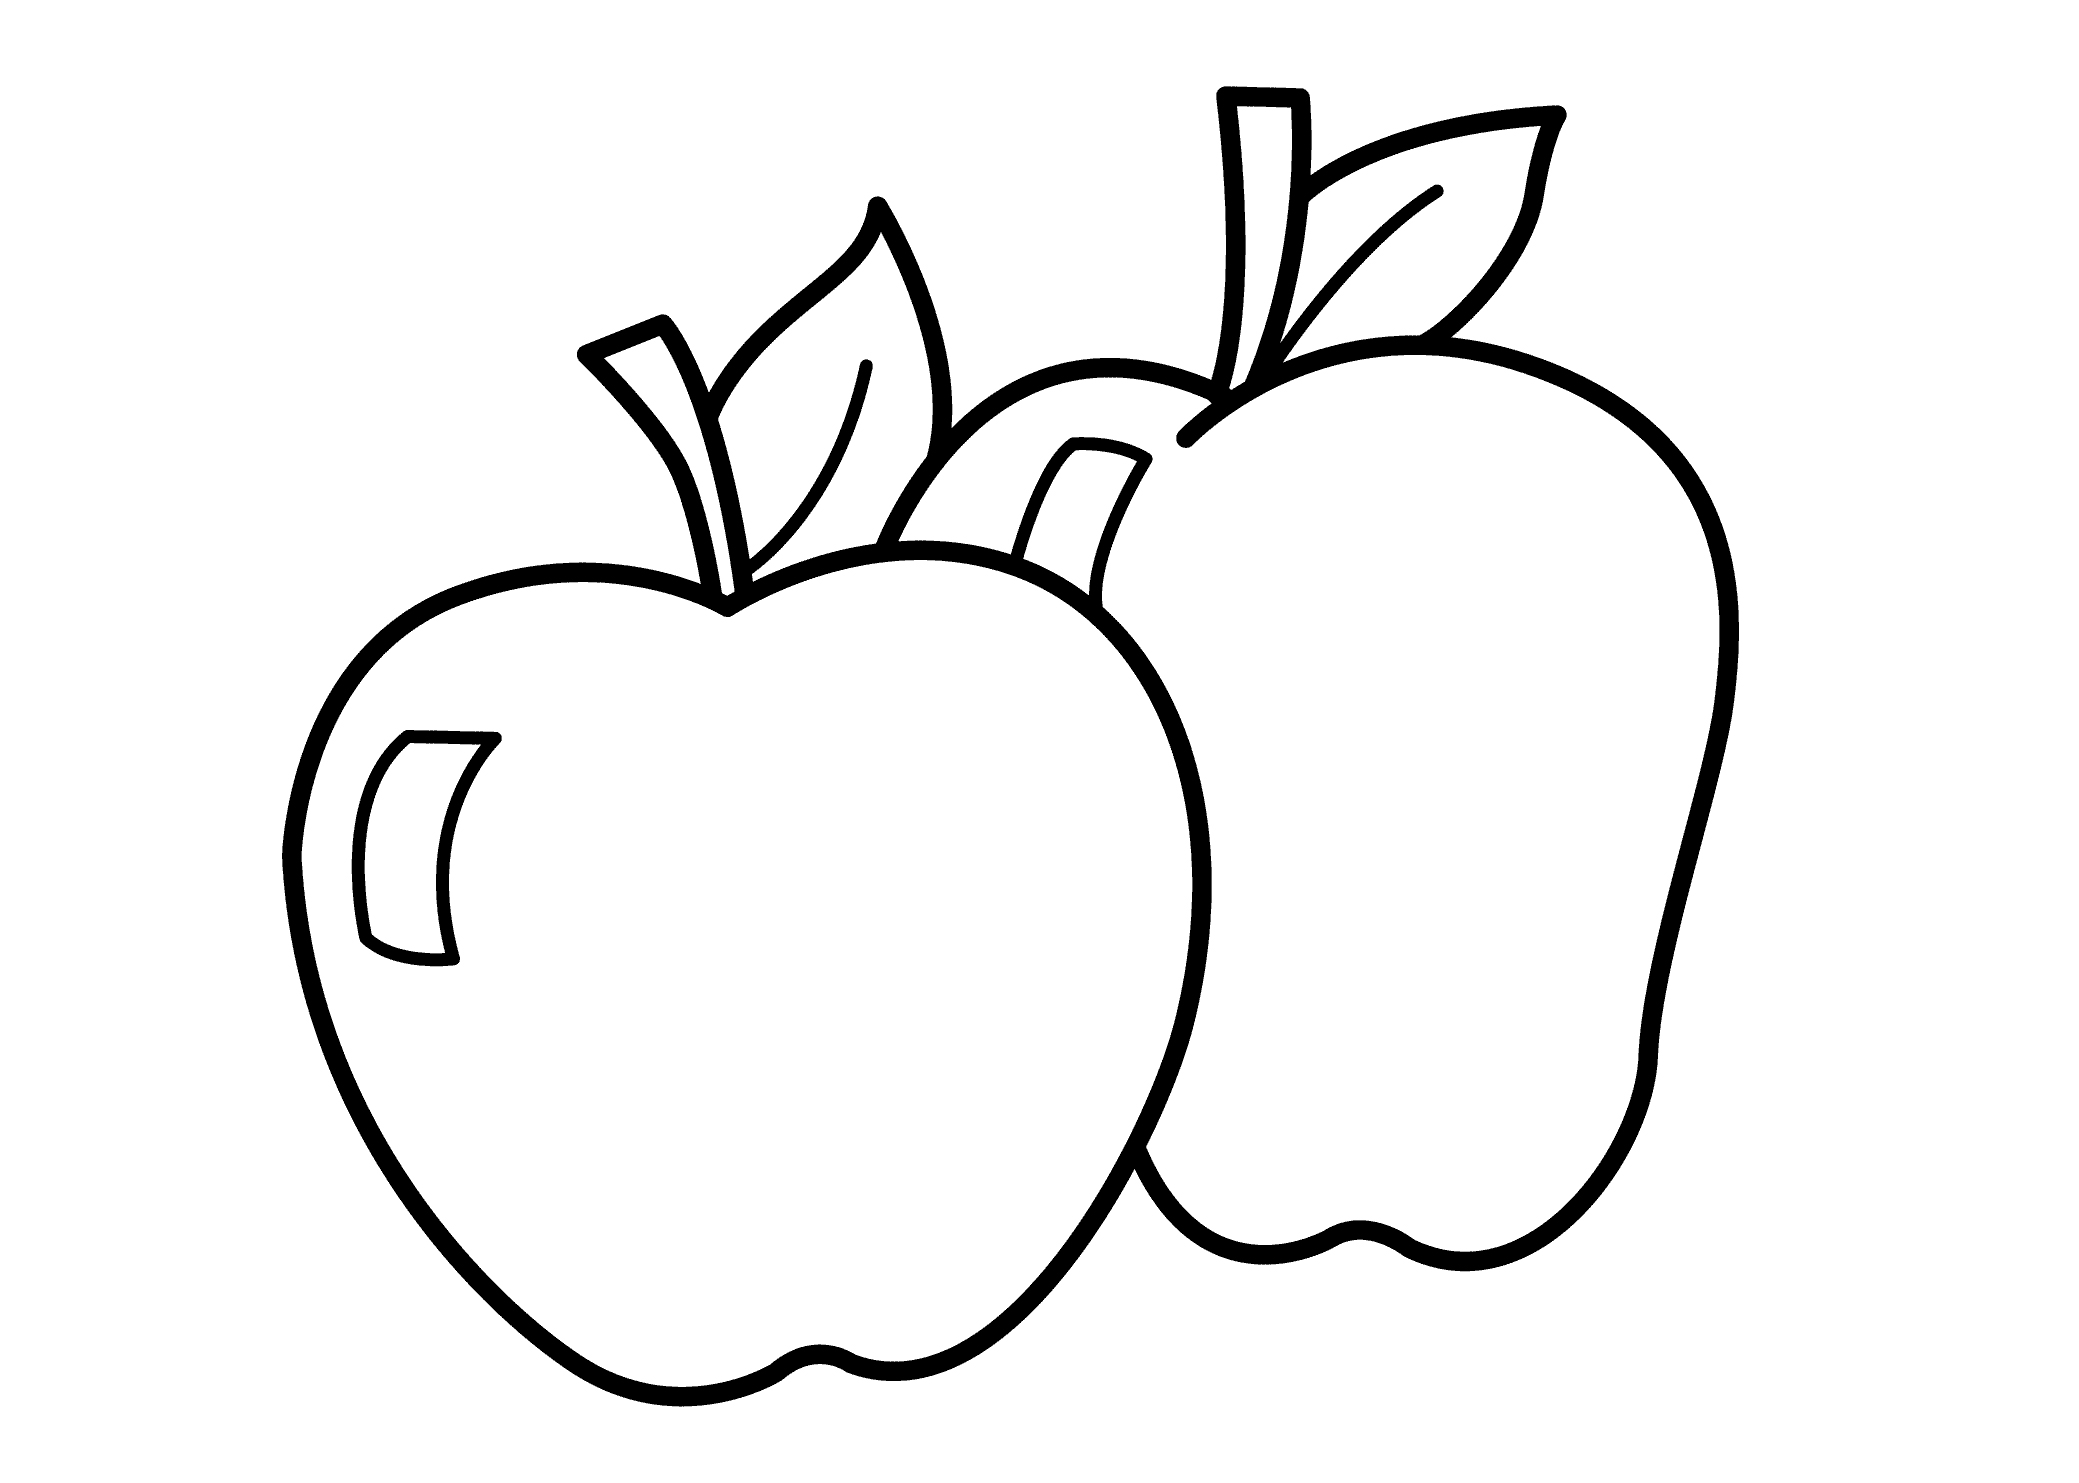 coloring apple page apple line drawing at getdrawings free download page apple coloring